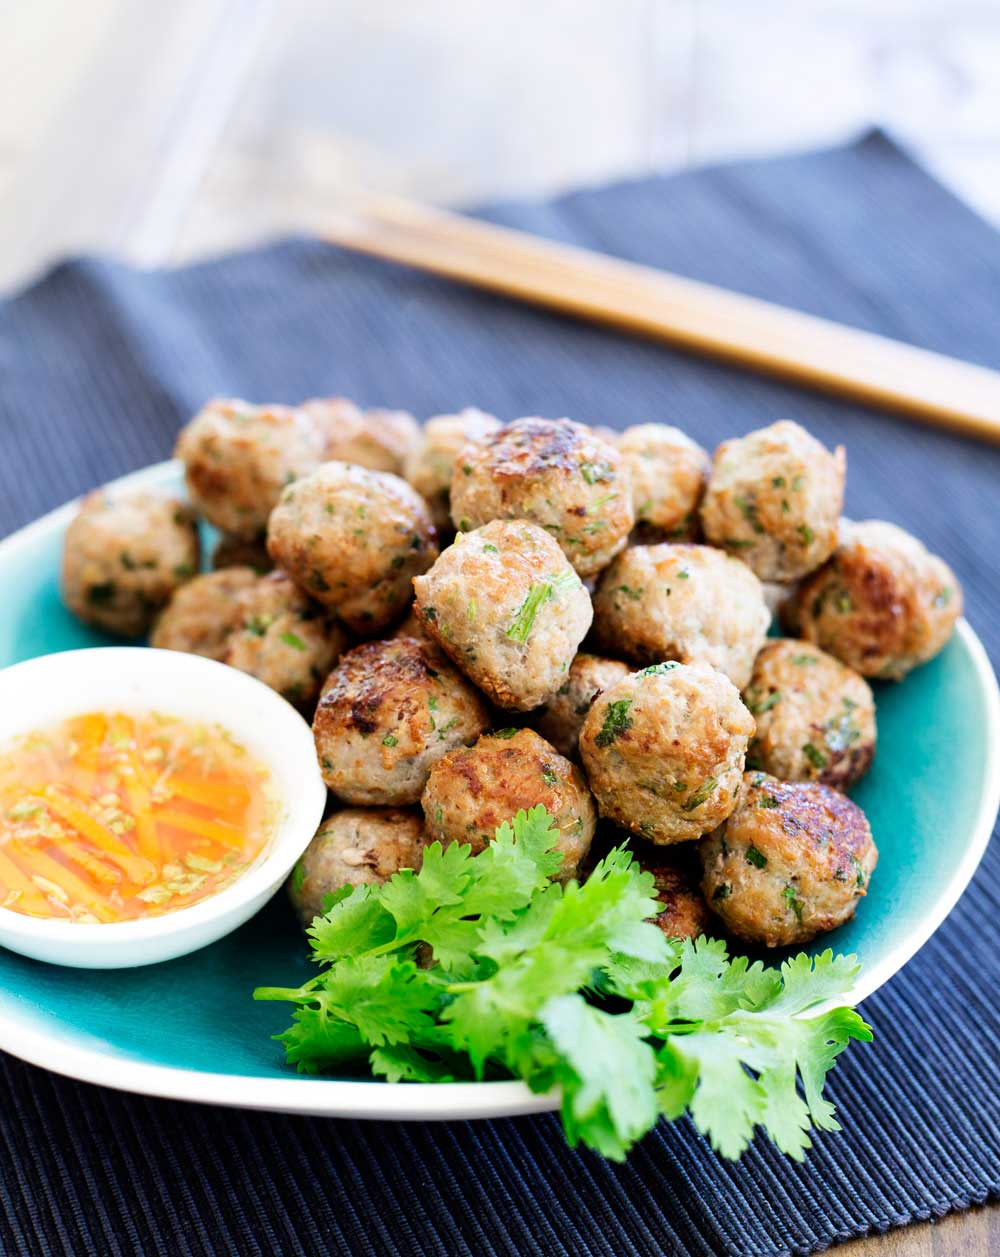 These Thai Pork Meatballs are flavour bombs! Fabulous thai flavours in easy to eat form! Serve these as a canapé, nibble or appetiser. Or cook them up as part of a Thai banquet. However you make them, make sure you grab a few for yourself as these go quickly.